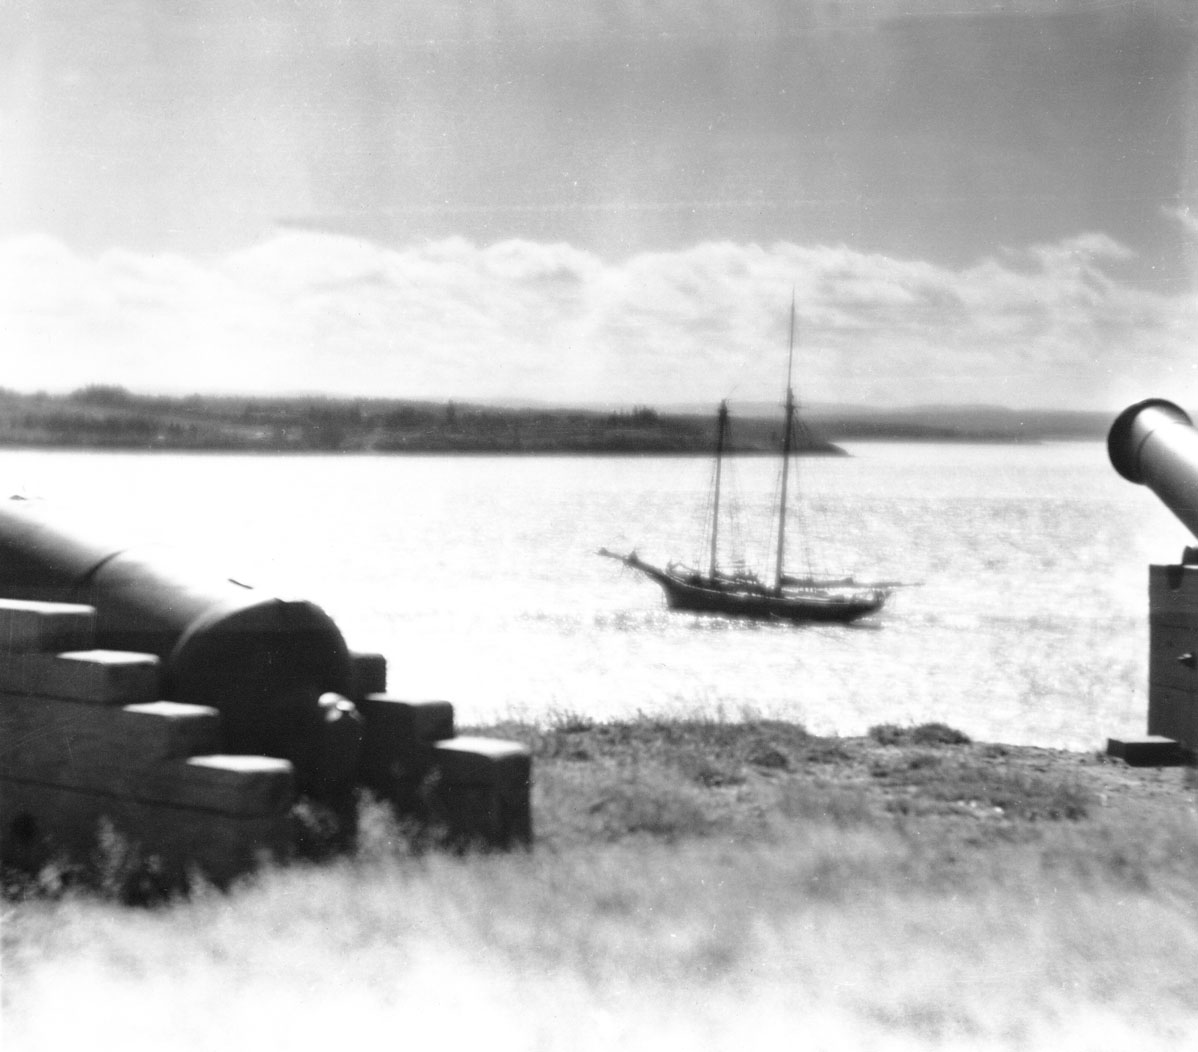 Cannon overlooking Pictou Harbour